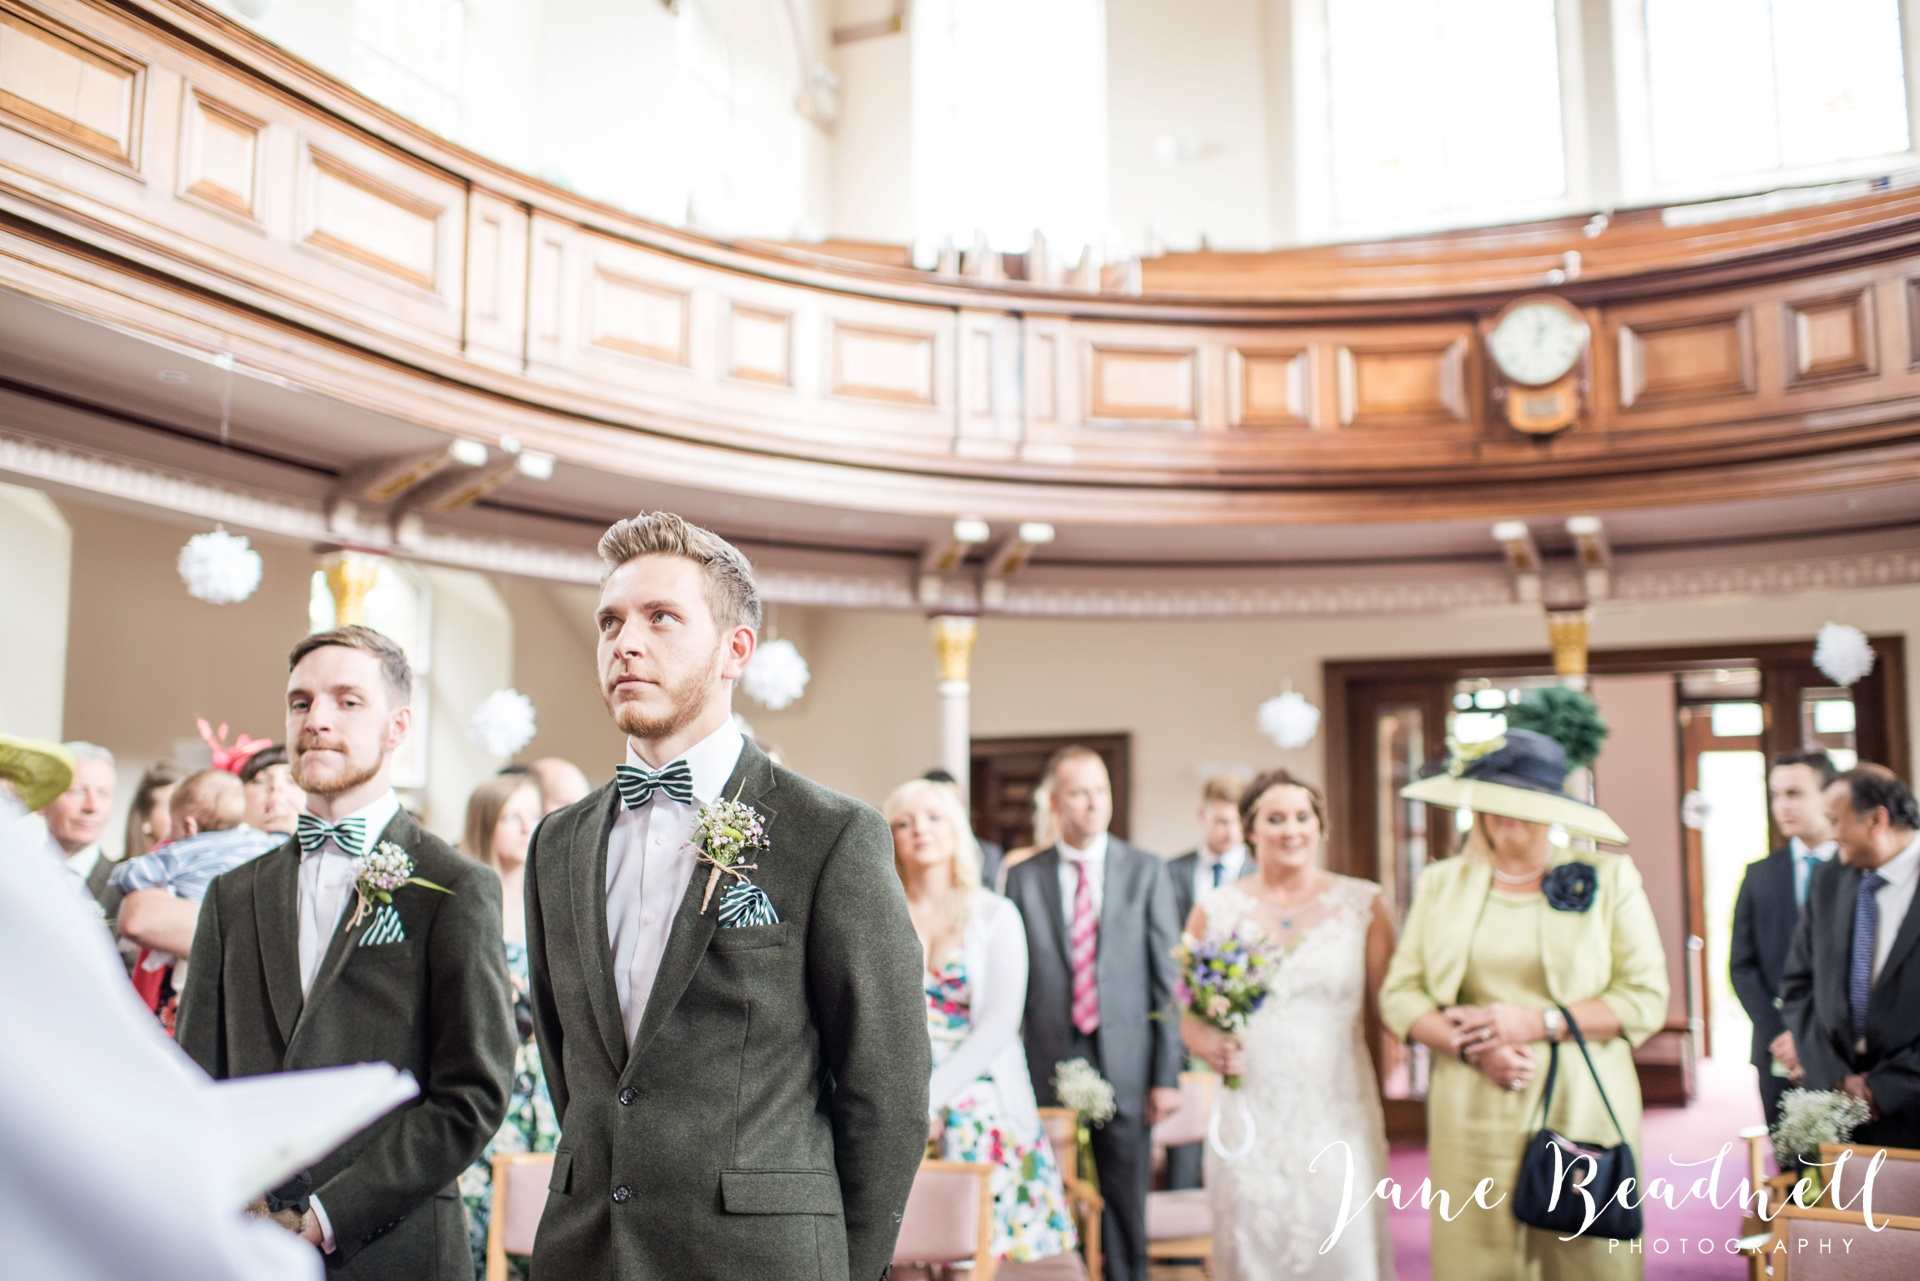 Jane Beadnell fine art wedding photographer The Old Deanery Ripon_0025